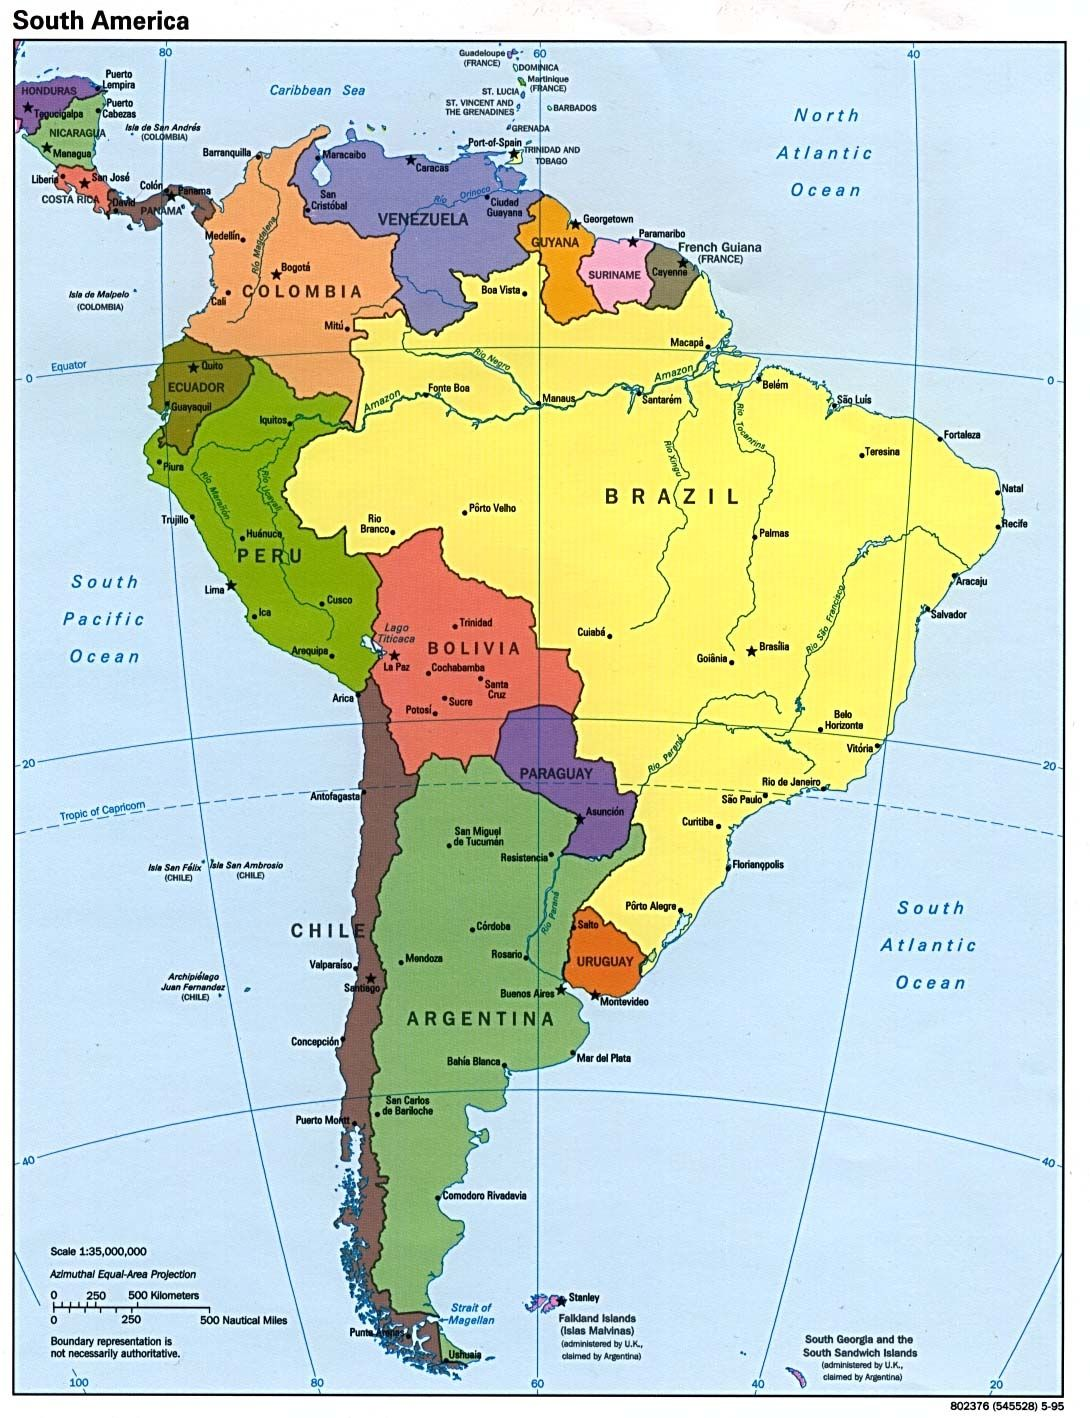 Download Stock Photos of physical map of south america images | All ...